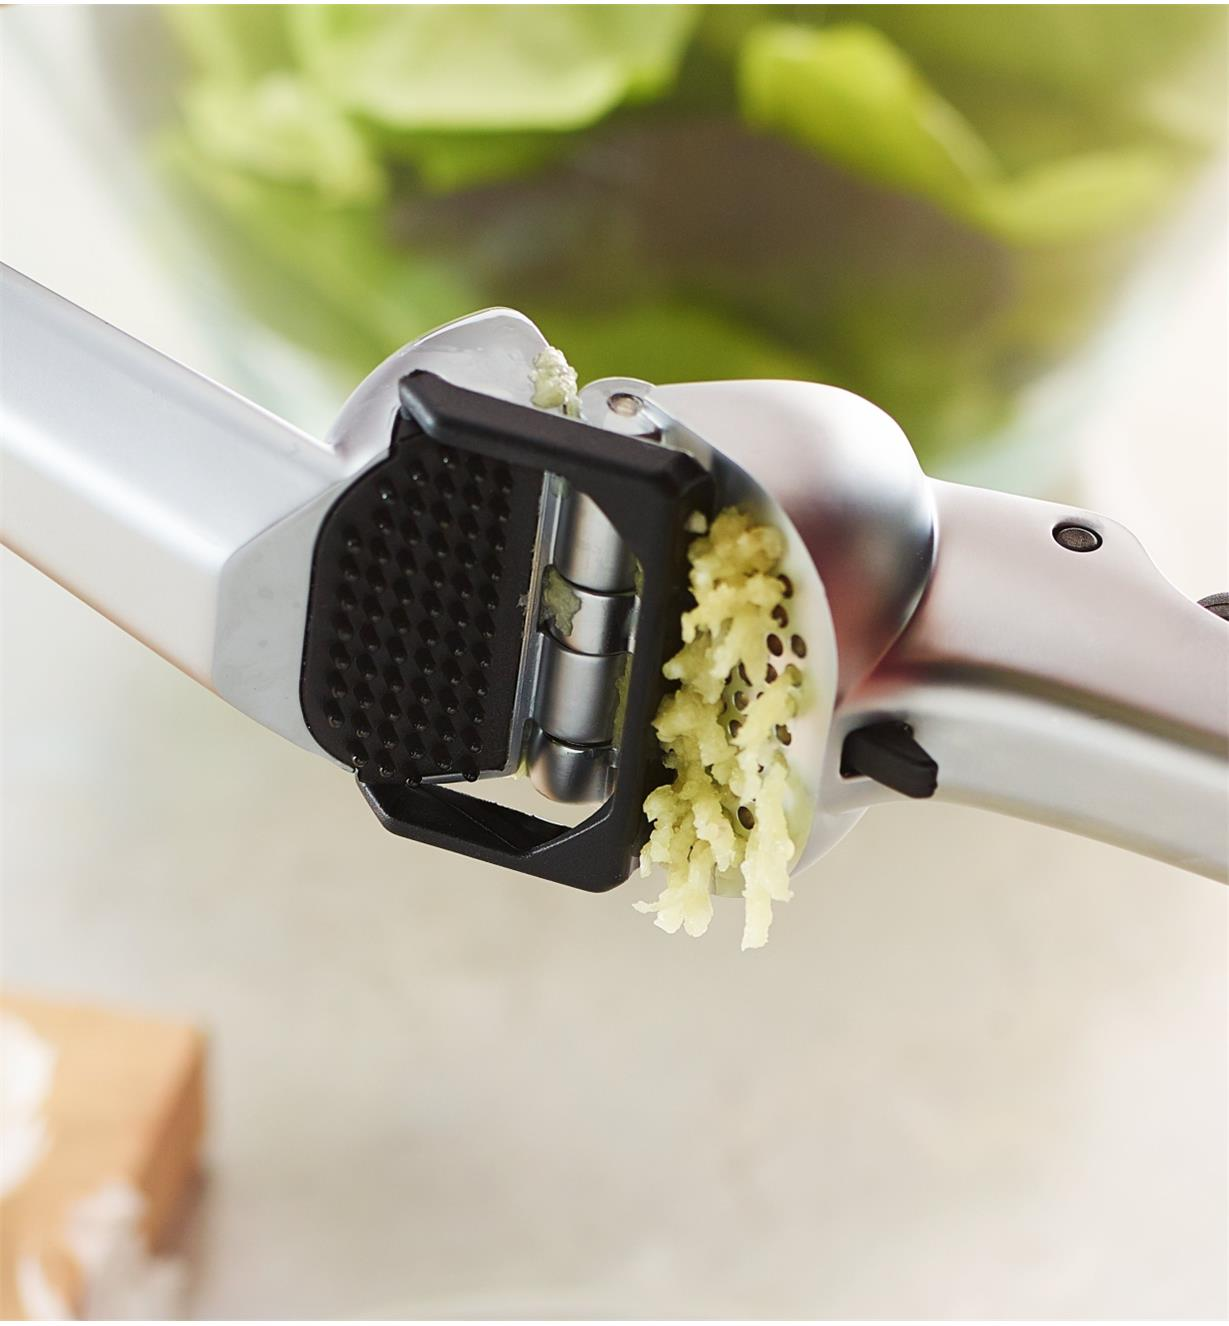 A plastic bar sweeping across the grate of the Garject Garlic Press